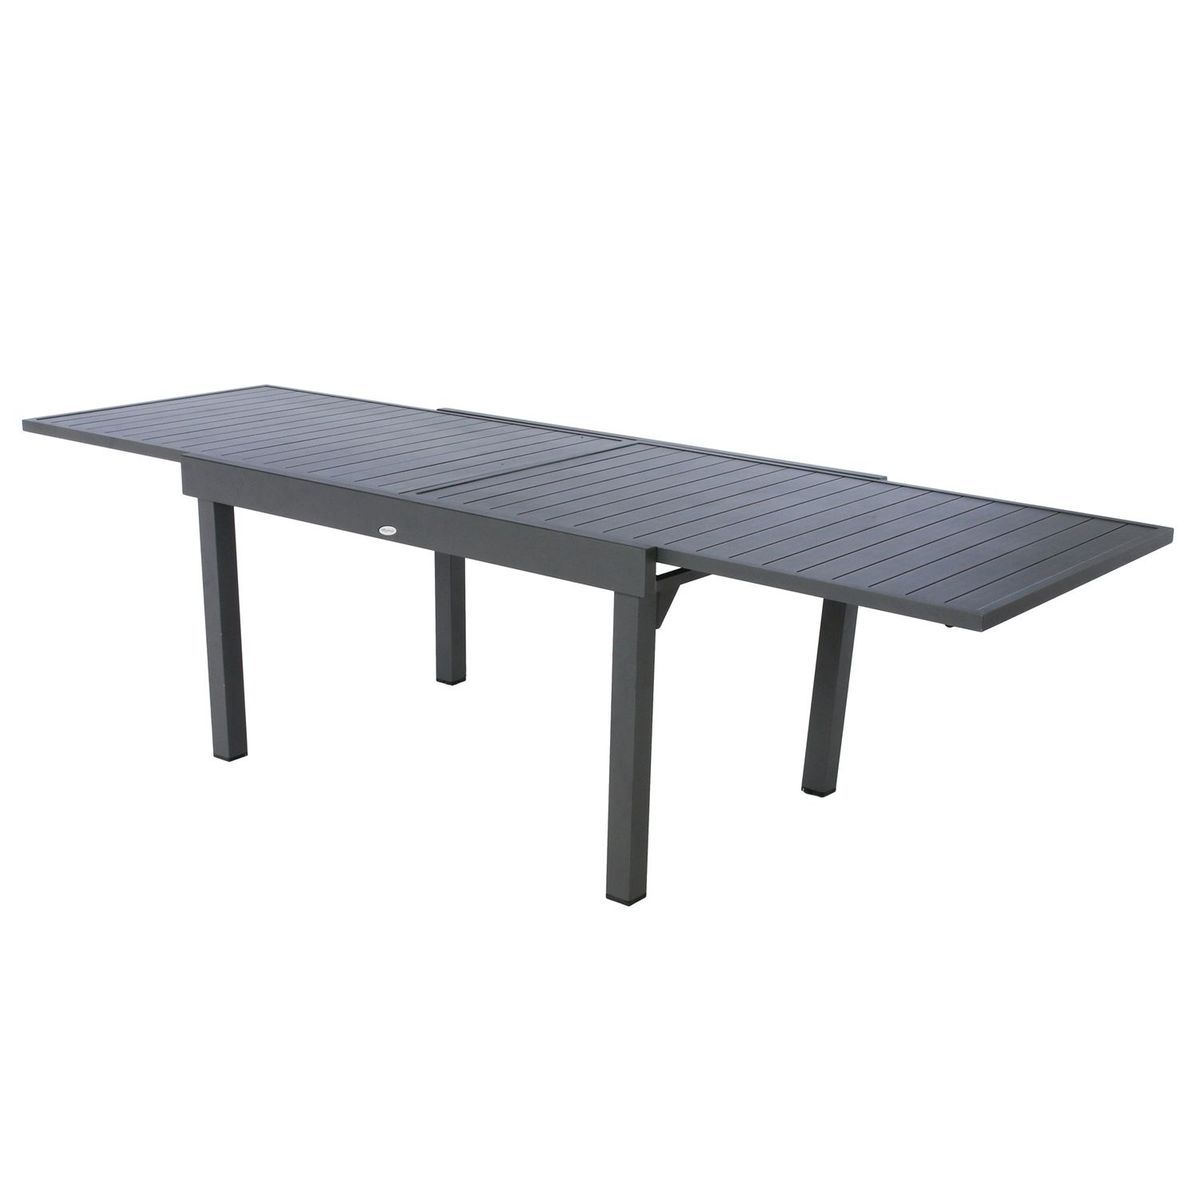 Table De Jardin Extensible 10 Personnes Piazza L 135 270 Cm Noir Graphite Taille Taille Unique Table De Jardin Table Extensible Table De Chevet Grise